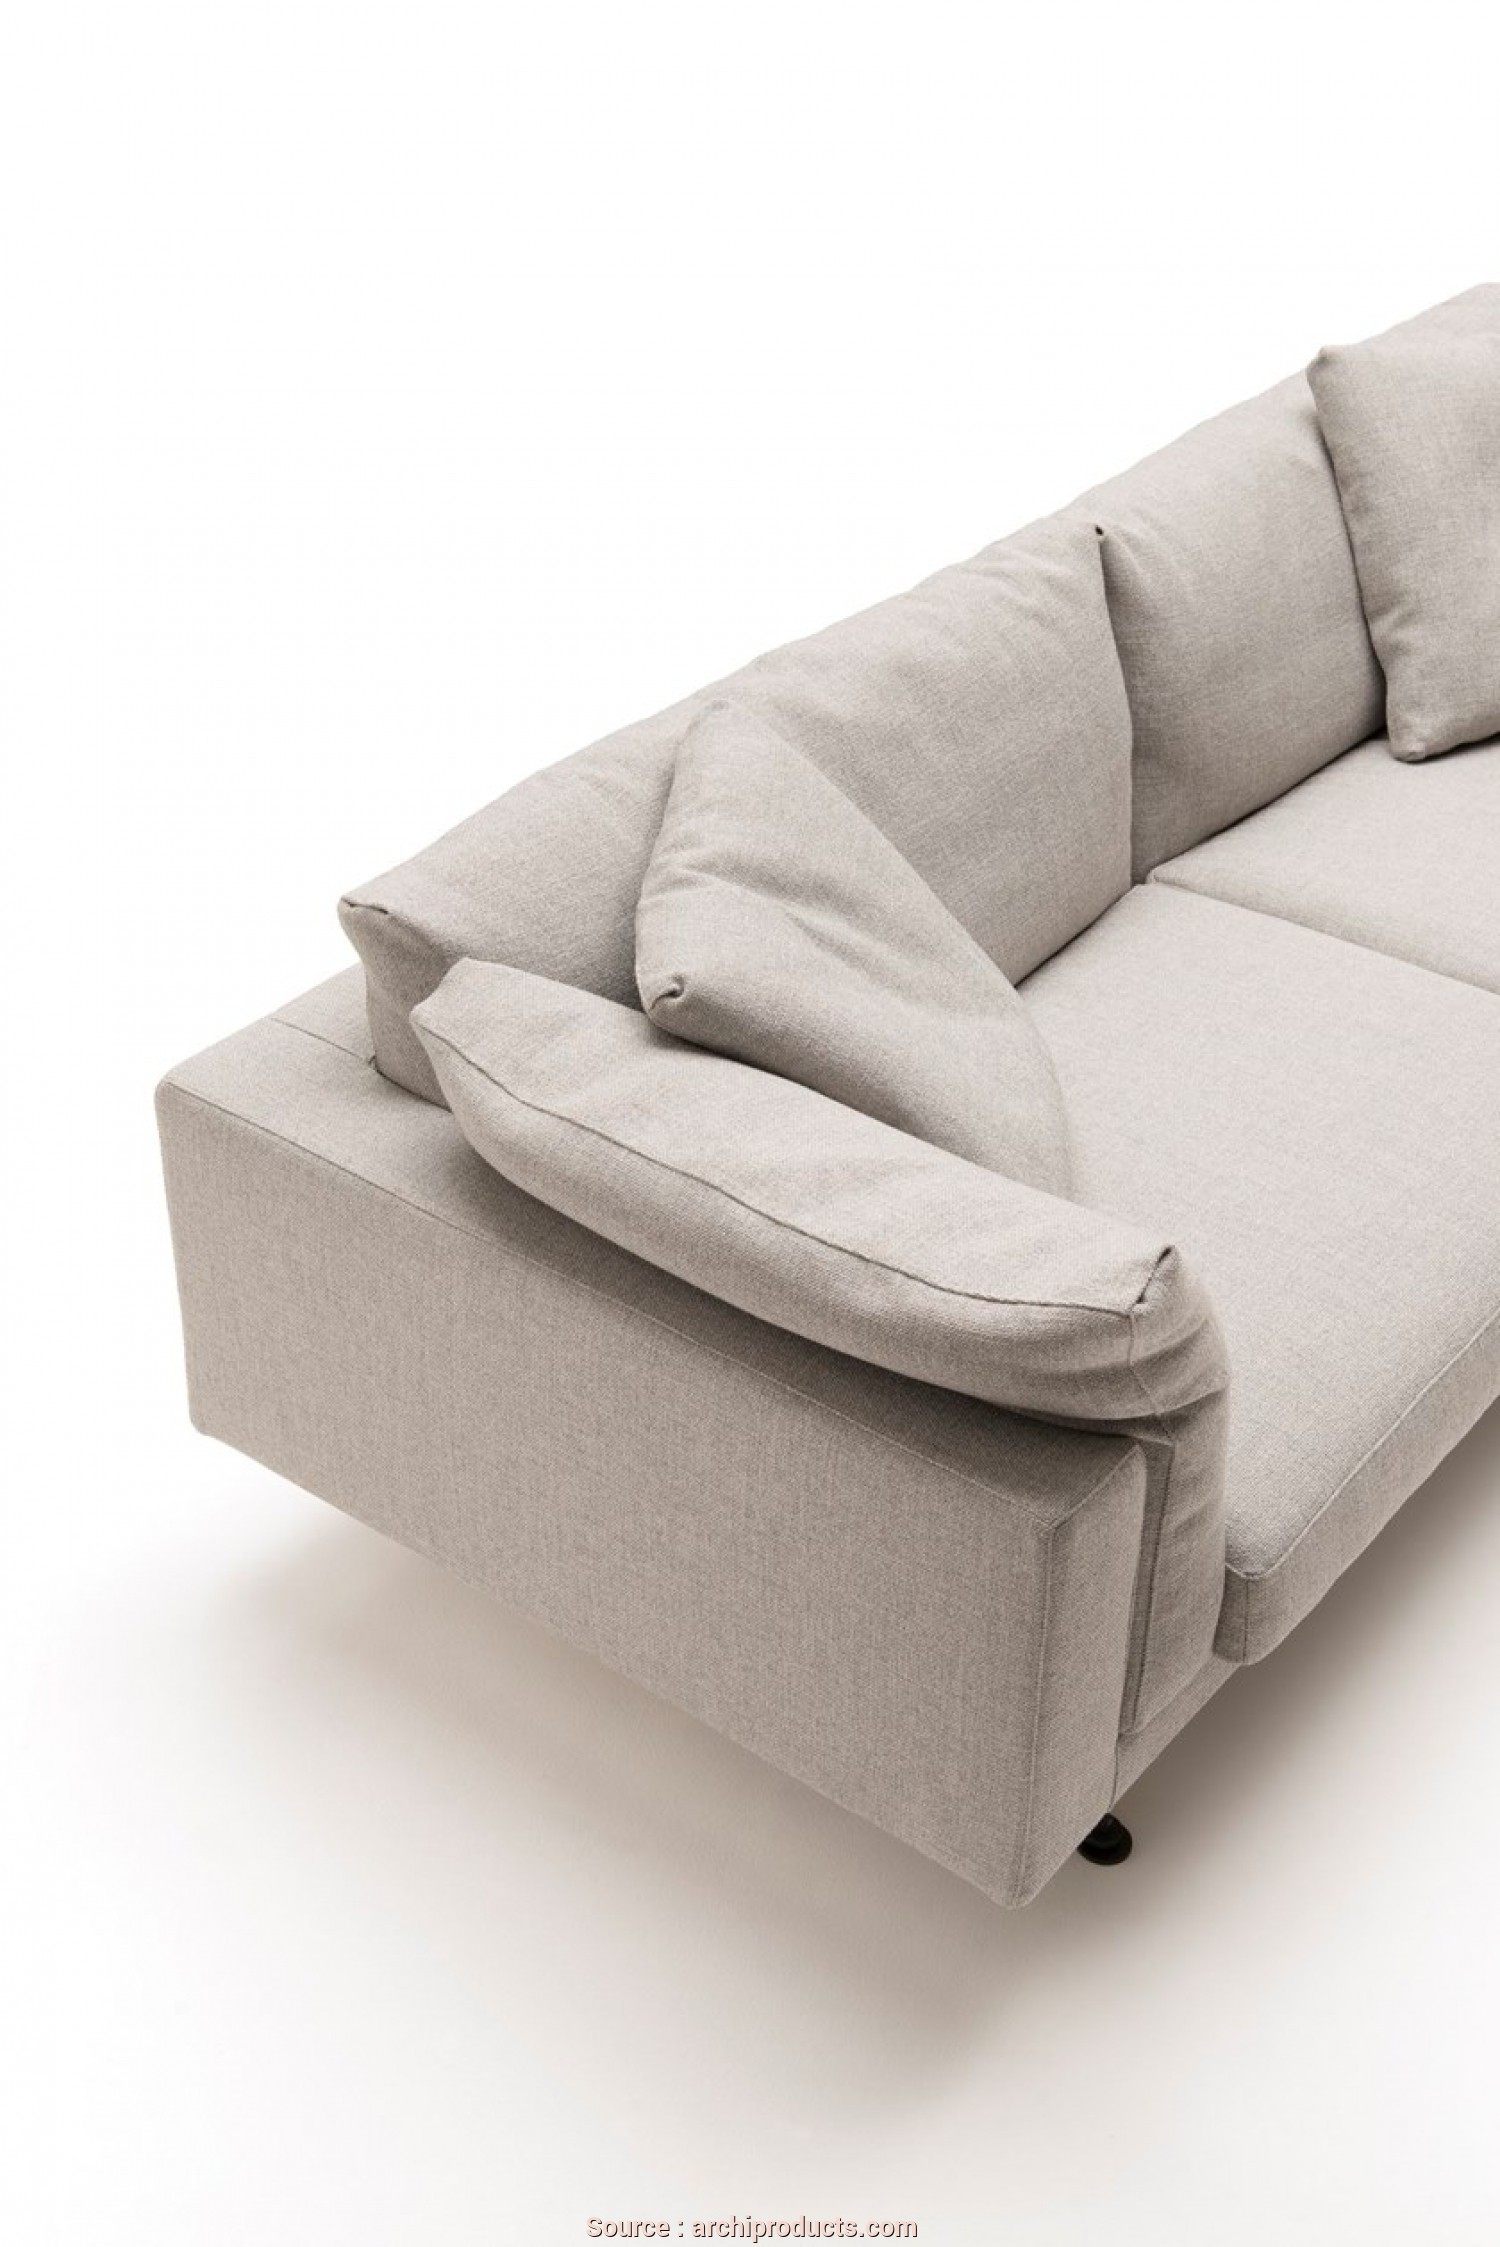 C Divani Flour, Classy FLOYD, Sofa Floyd Collection By Living Divani Design Piero Lissoni